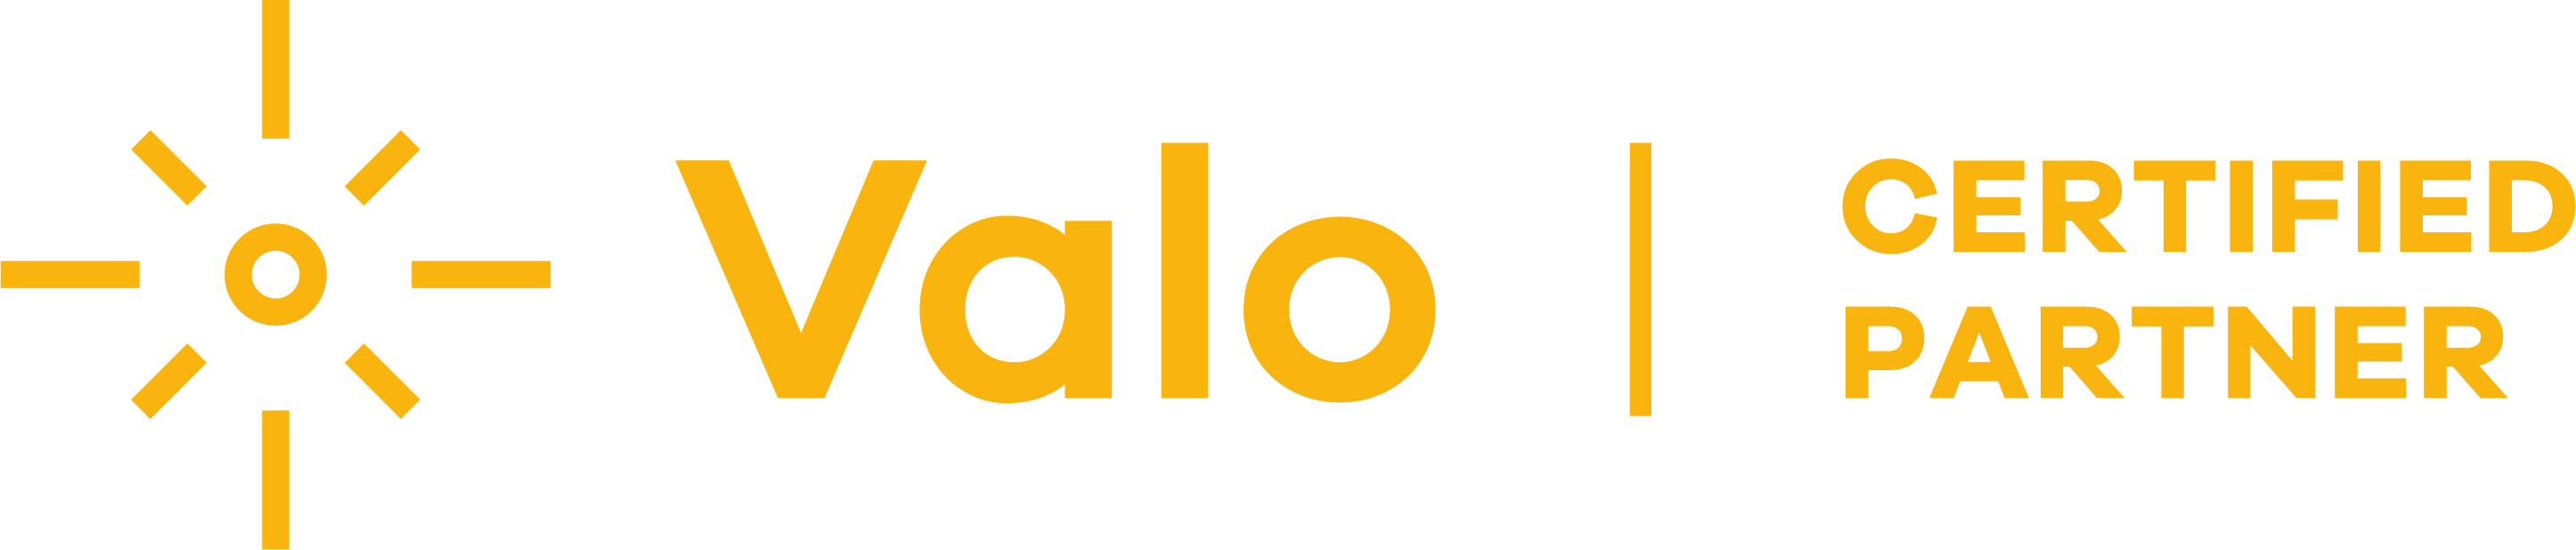 Valo | Certified Partner